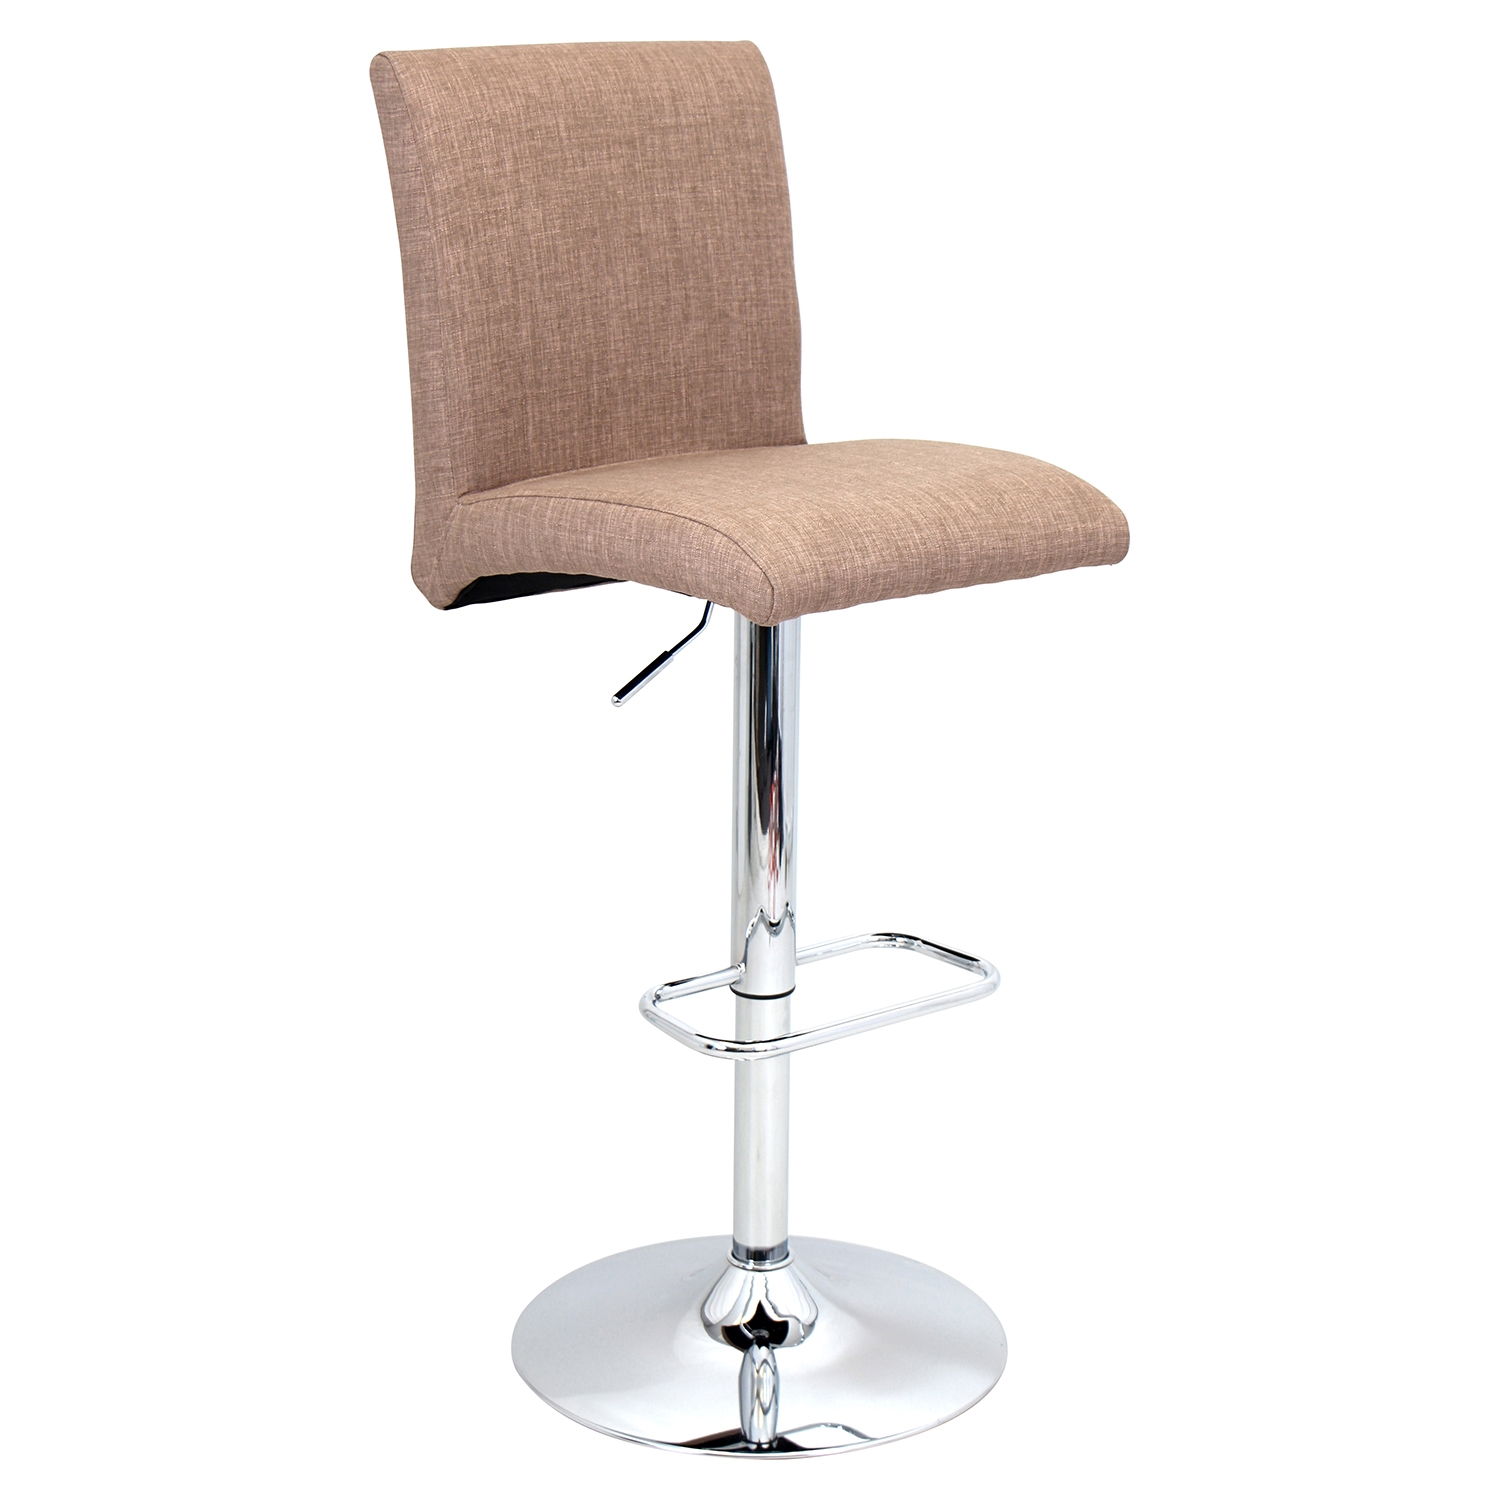 Tintori Height Adjustable Barstool - Swivel, Medium Brown